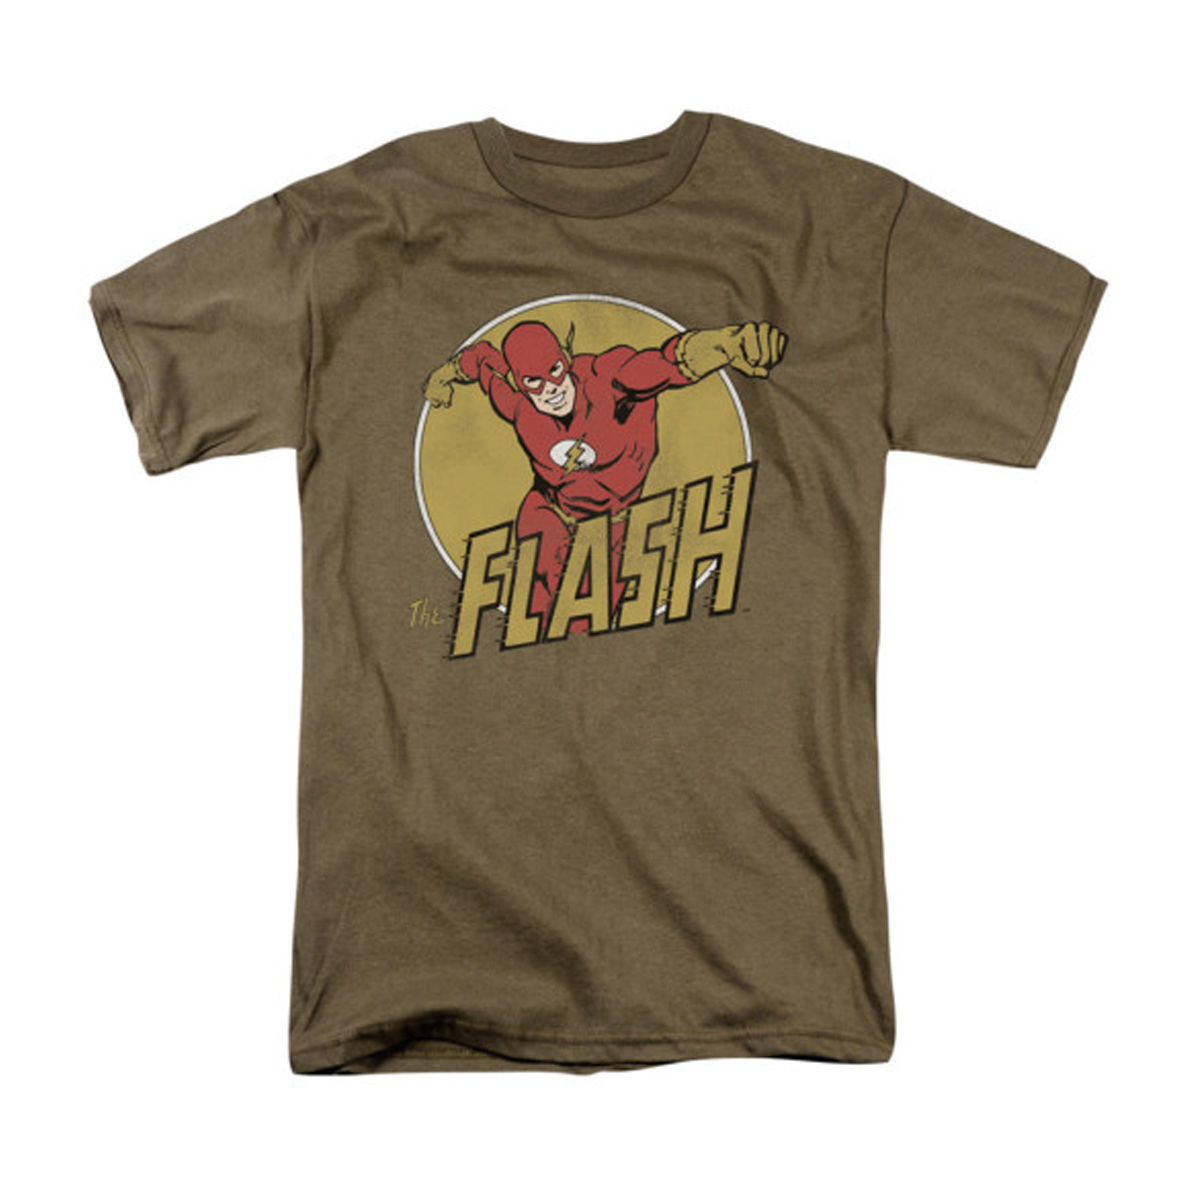 Sheldon's Flash T-shirt